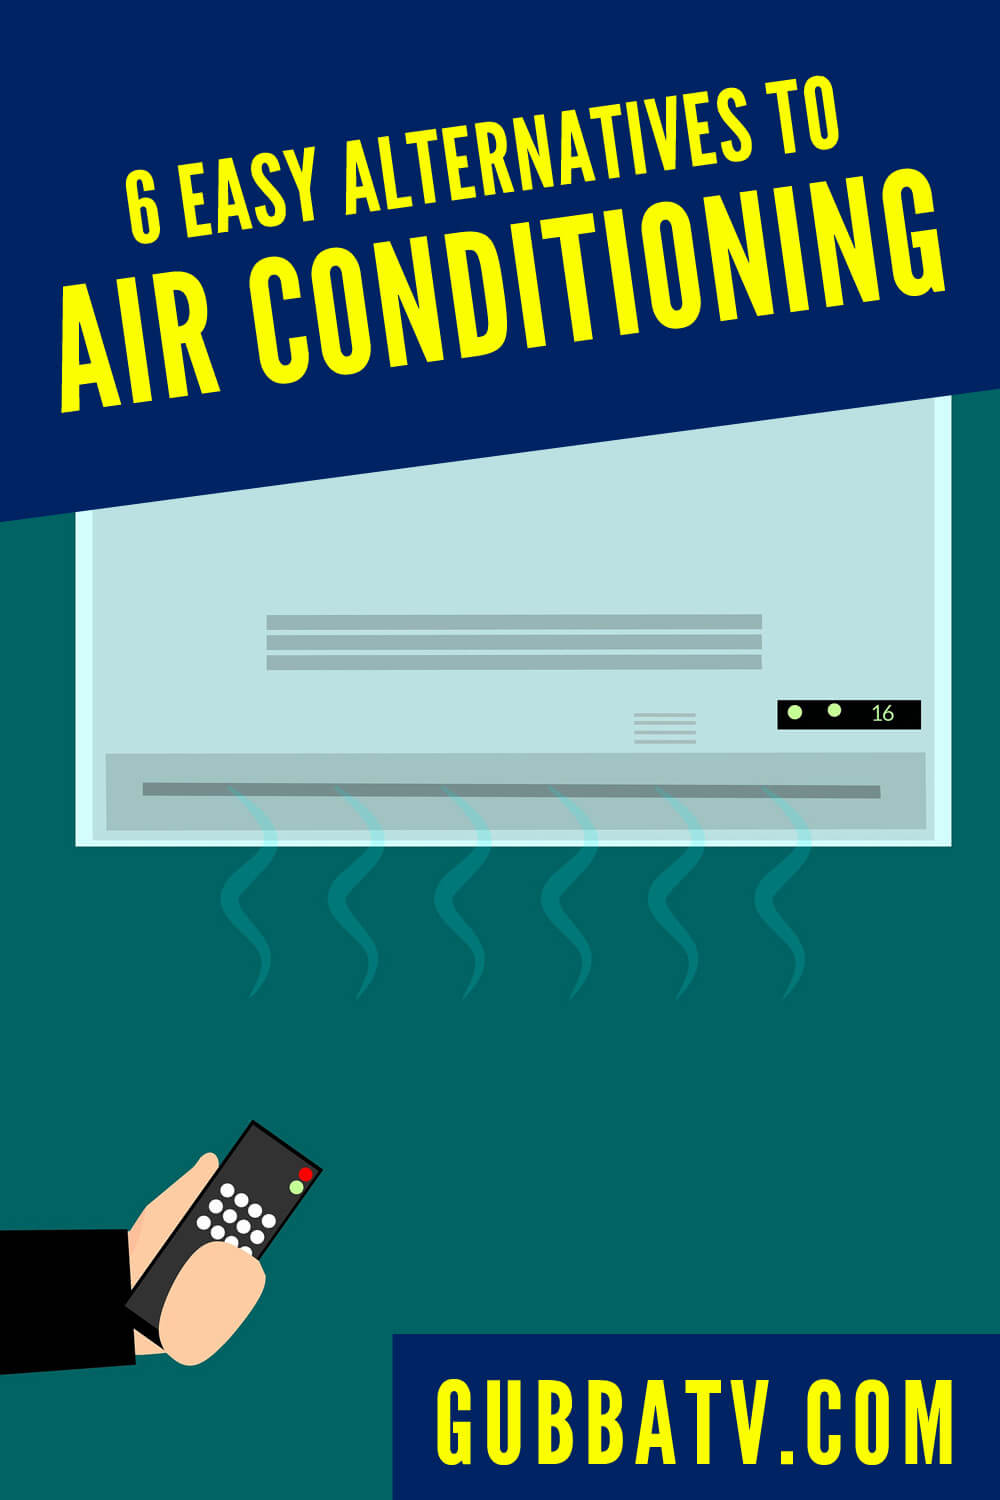 6 Easy Alternatives to Air Conditioning